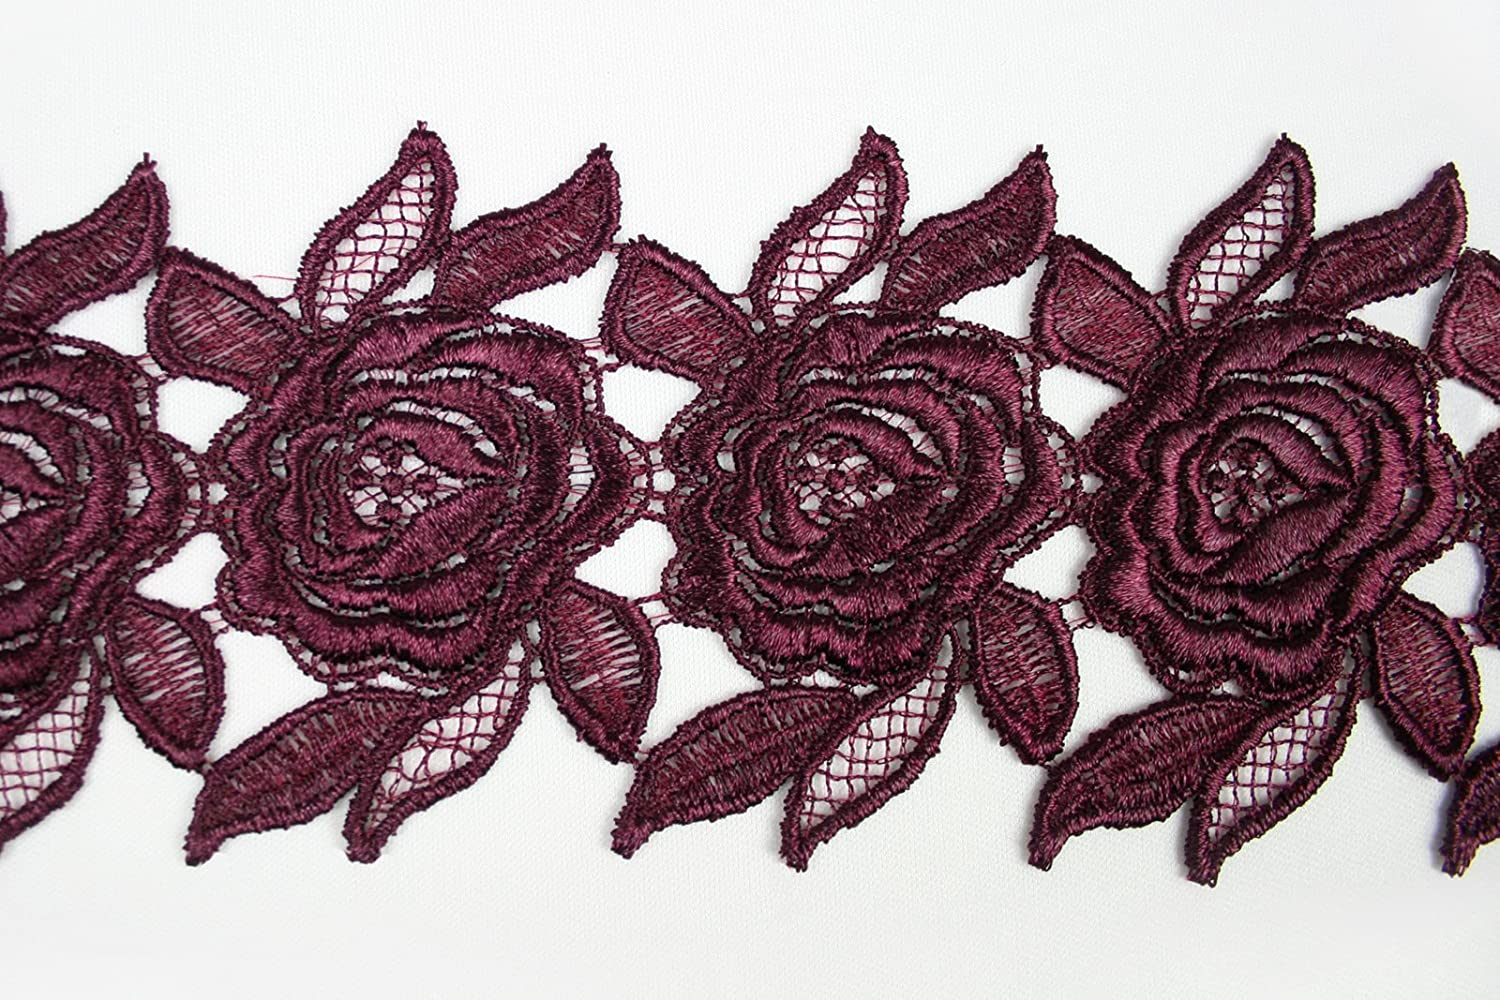 Burgundy 3 12 Colors Embroidered Rose Flower Venice Lace Trim Floral Guipure By Yard